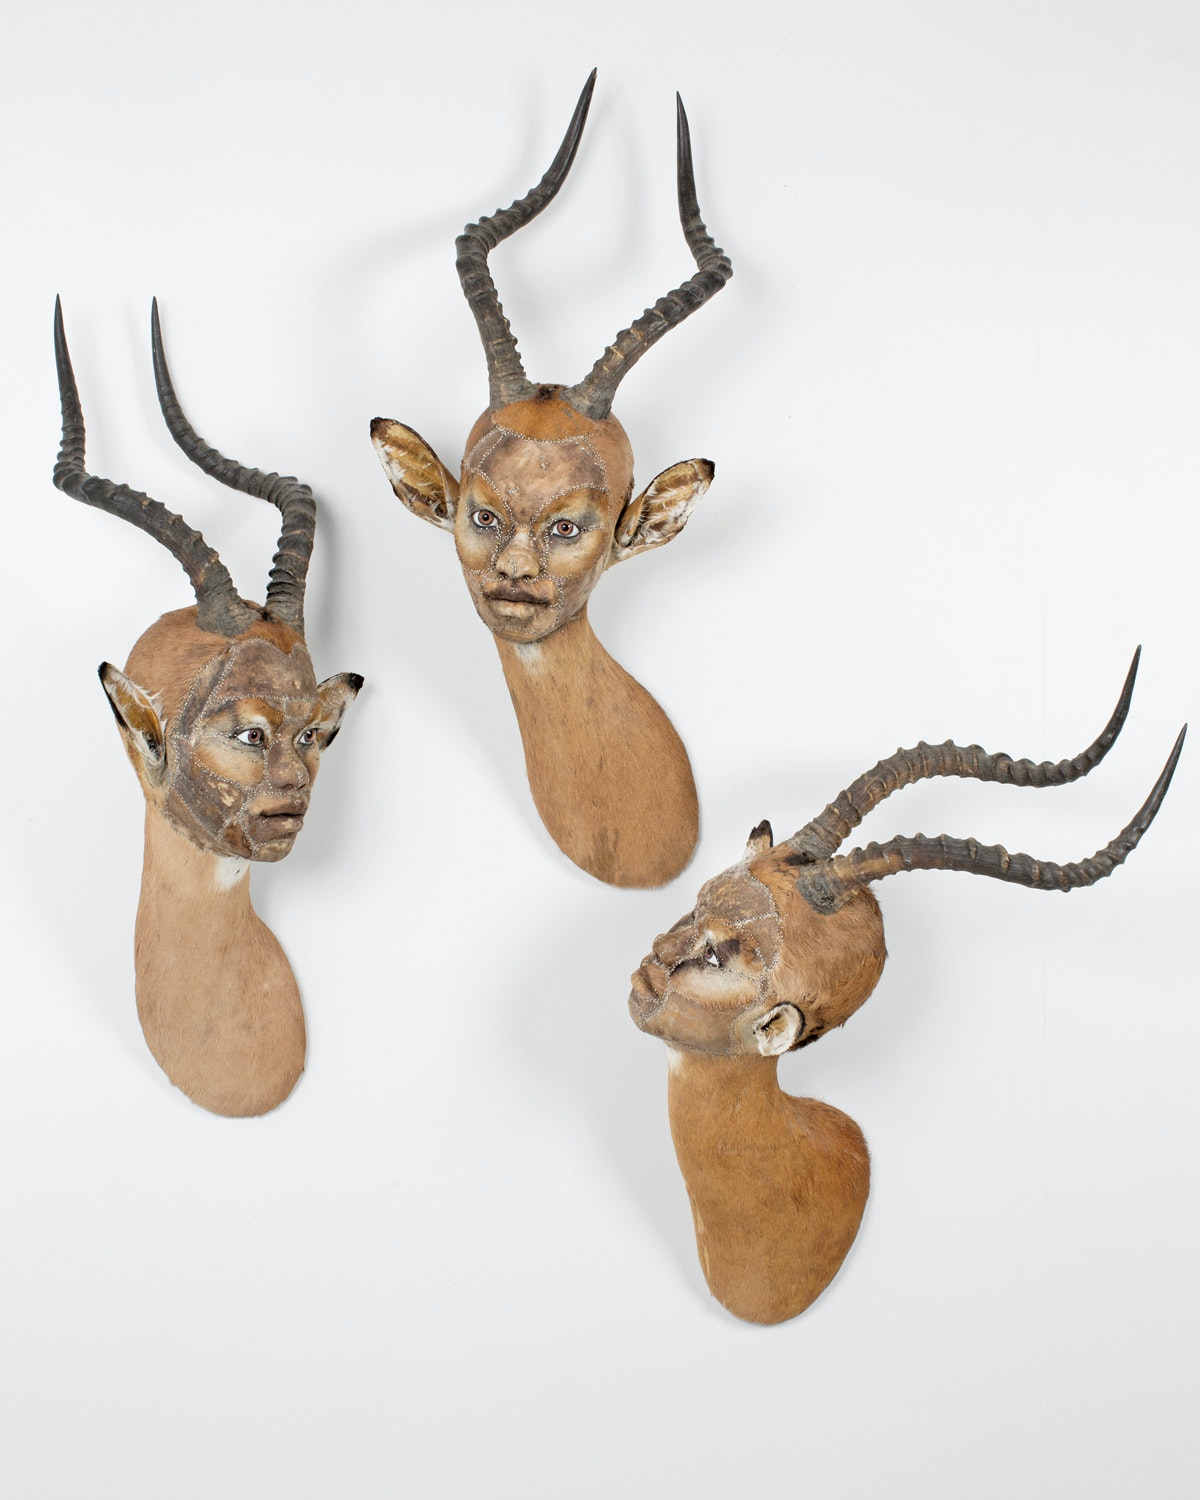 Three wallmounted sculptures that look like taxidermied impala heads except the faces are more like women